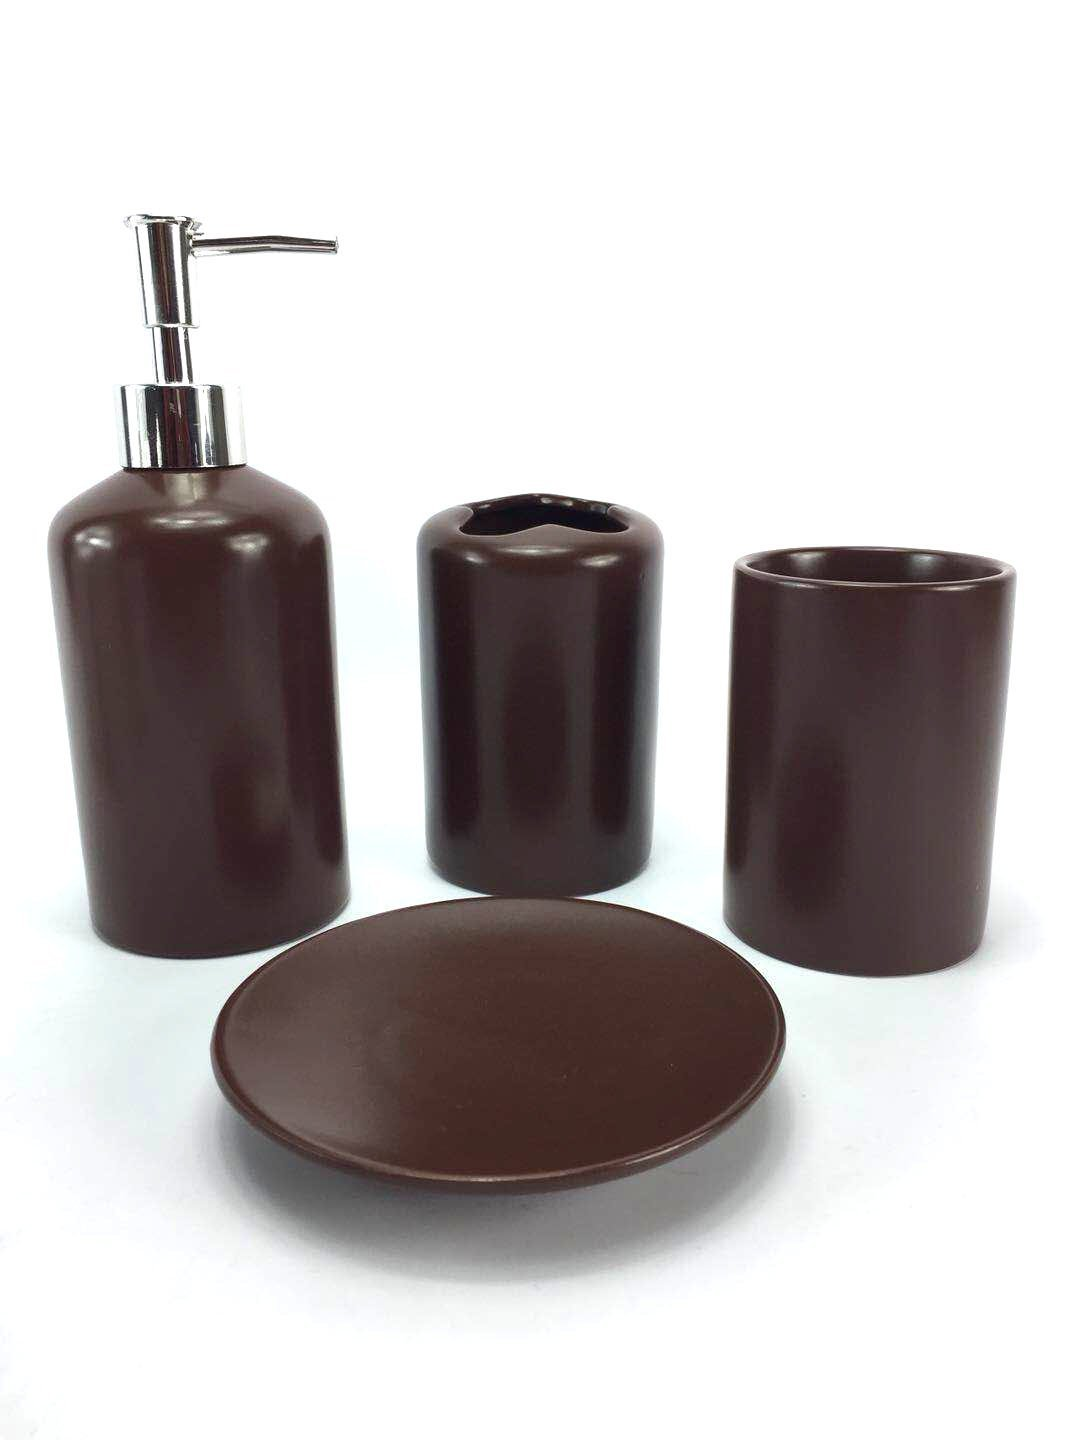 Bath Accessories Wpm 4 Piece Ceramic Bath Accessory Set Includes Bathroom Designer Soap Or Lotion Dispenser W Toothbrush Holder Tumbler Soap Dish Choose From